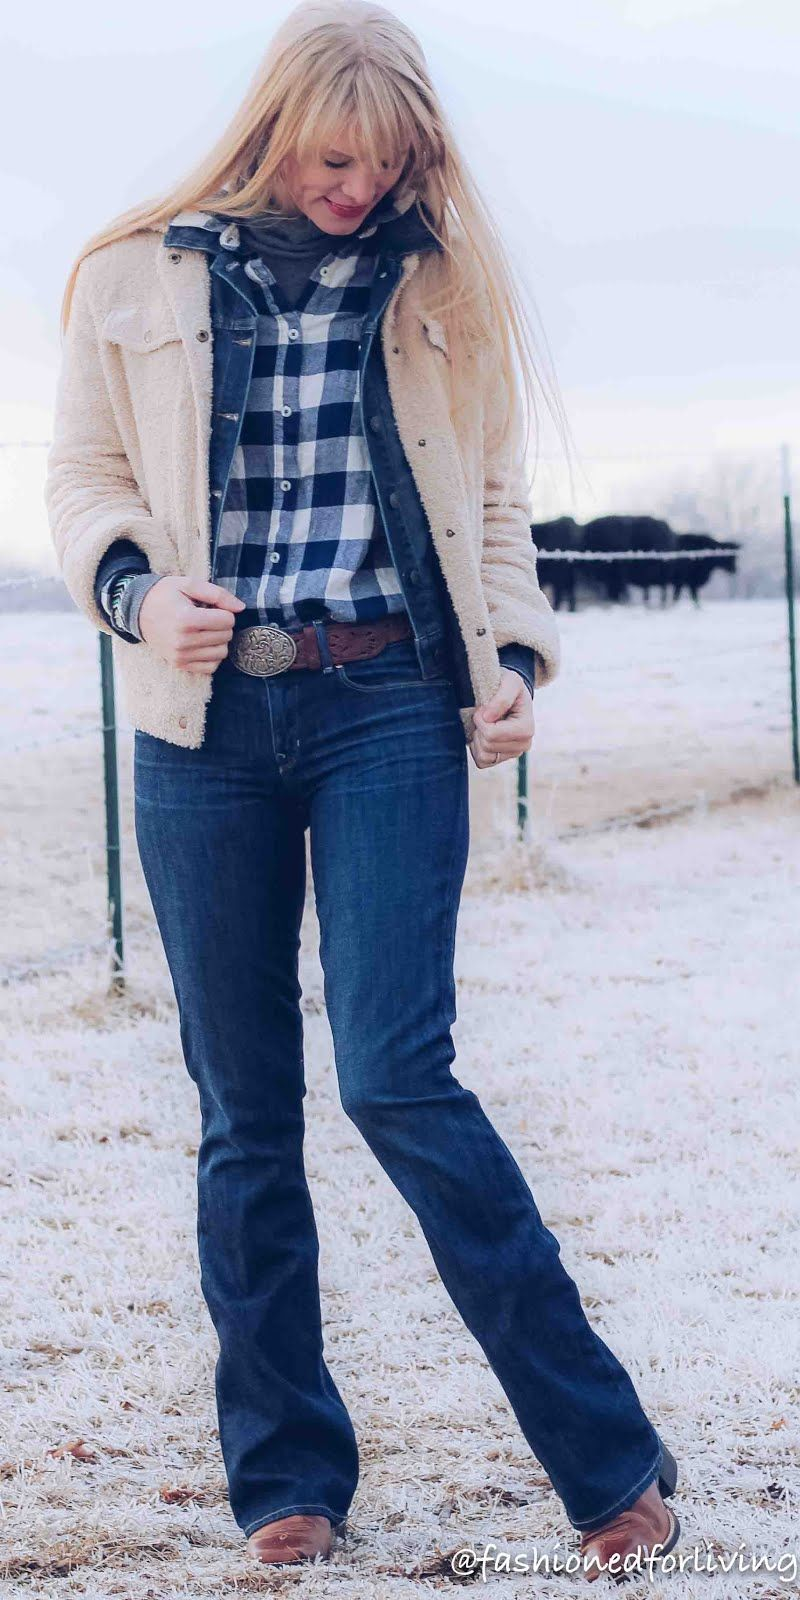 Shearling Coat Layered Over Denim Jacket Outfit With Bootcut Jean And Cowboy Boots Bootcut Jeans Outfit Denim Jacket Winter Winter Outfits [ 1600 x 800 Pixel ]